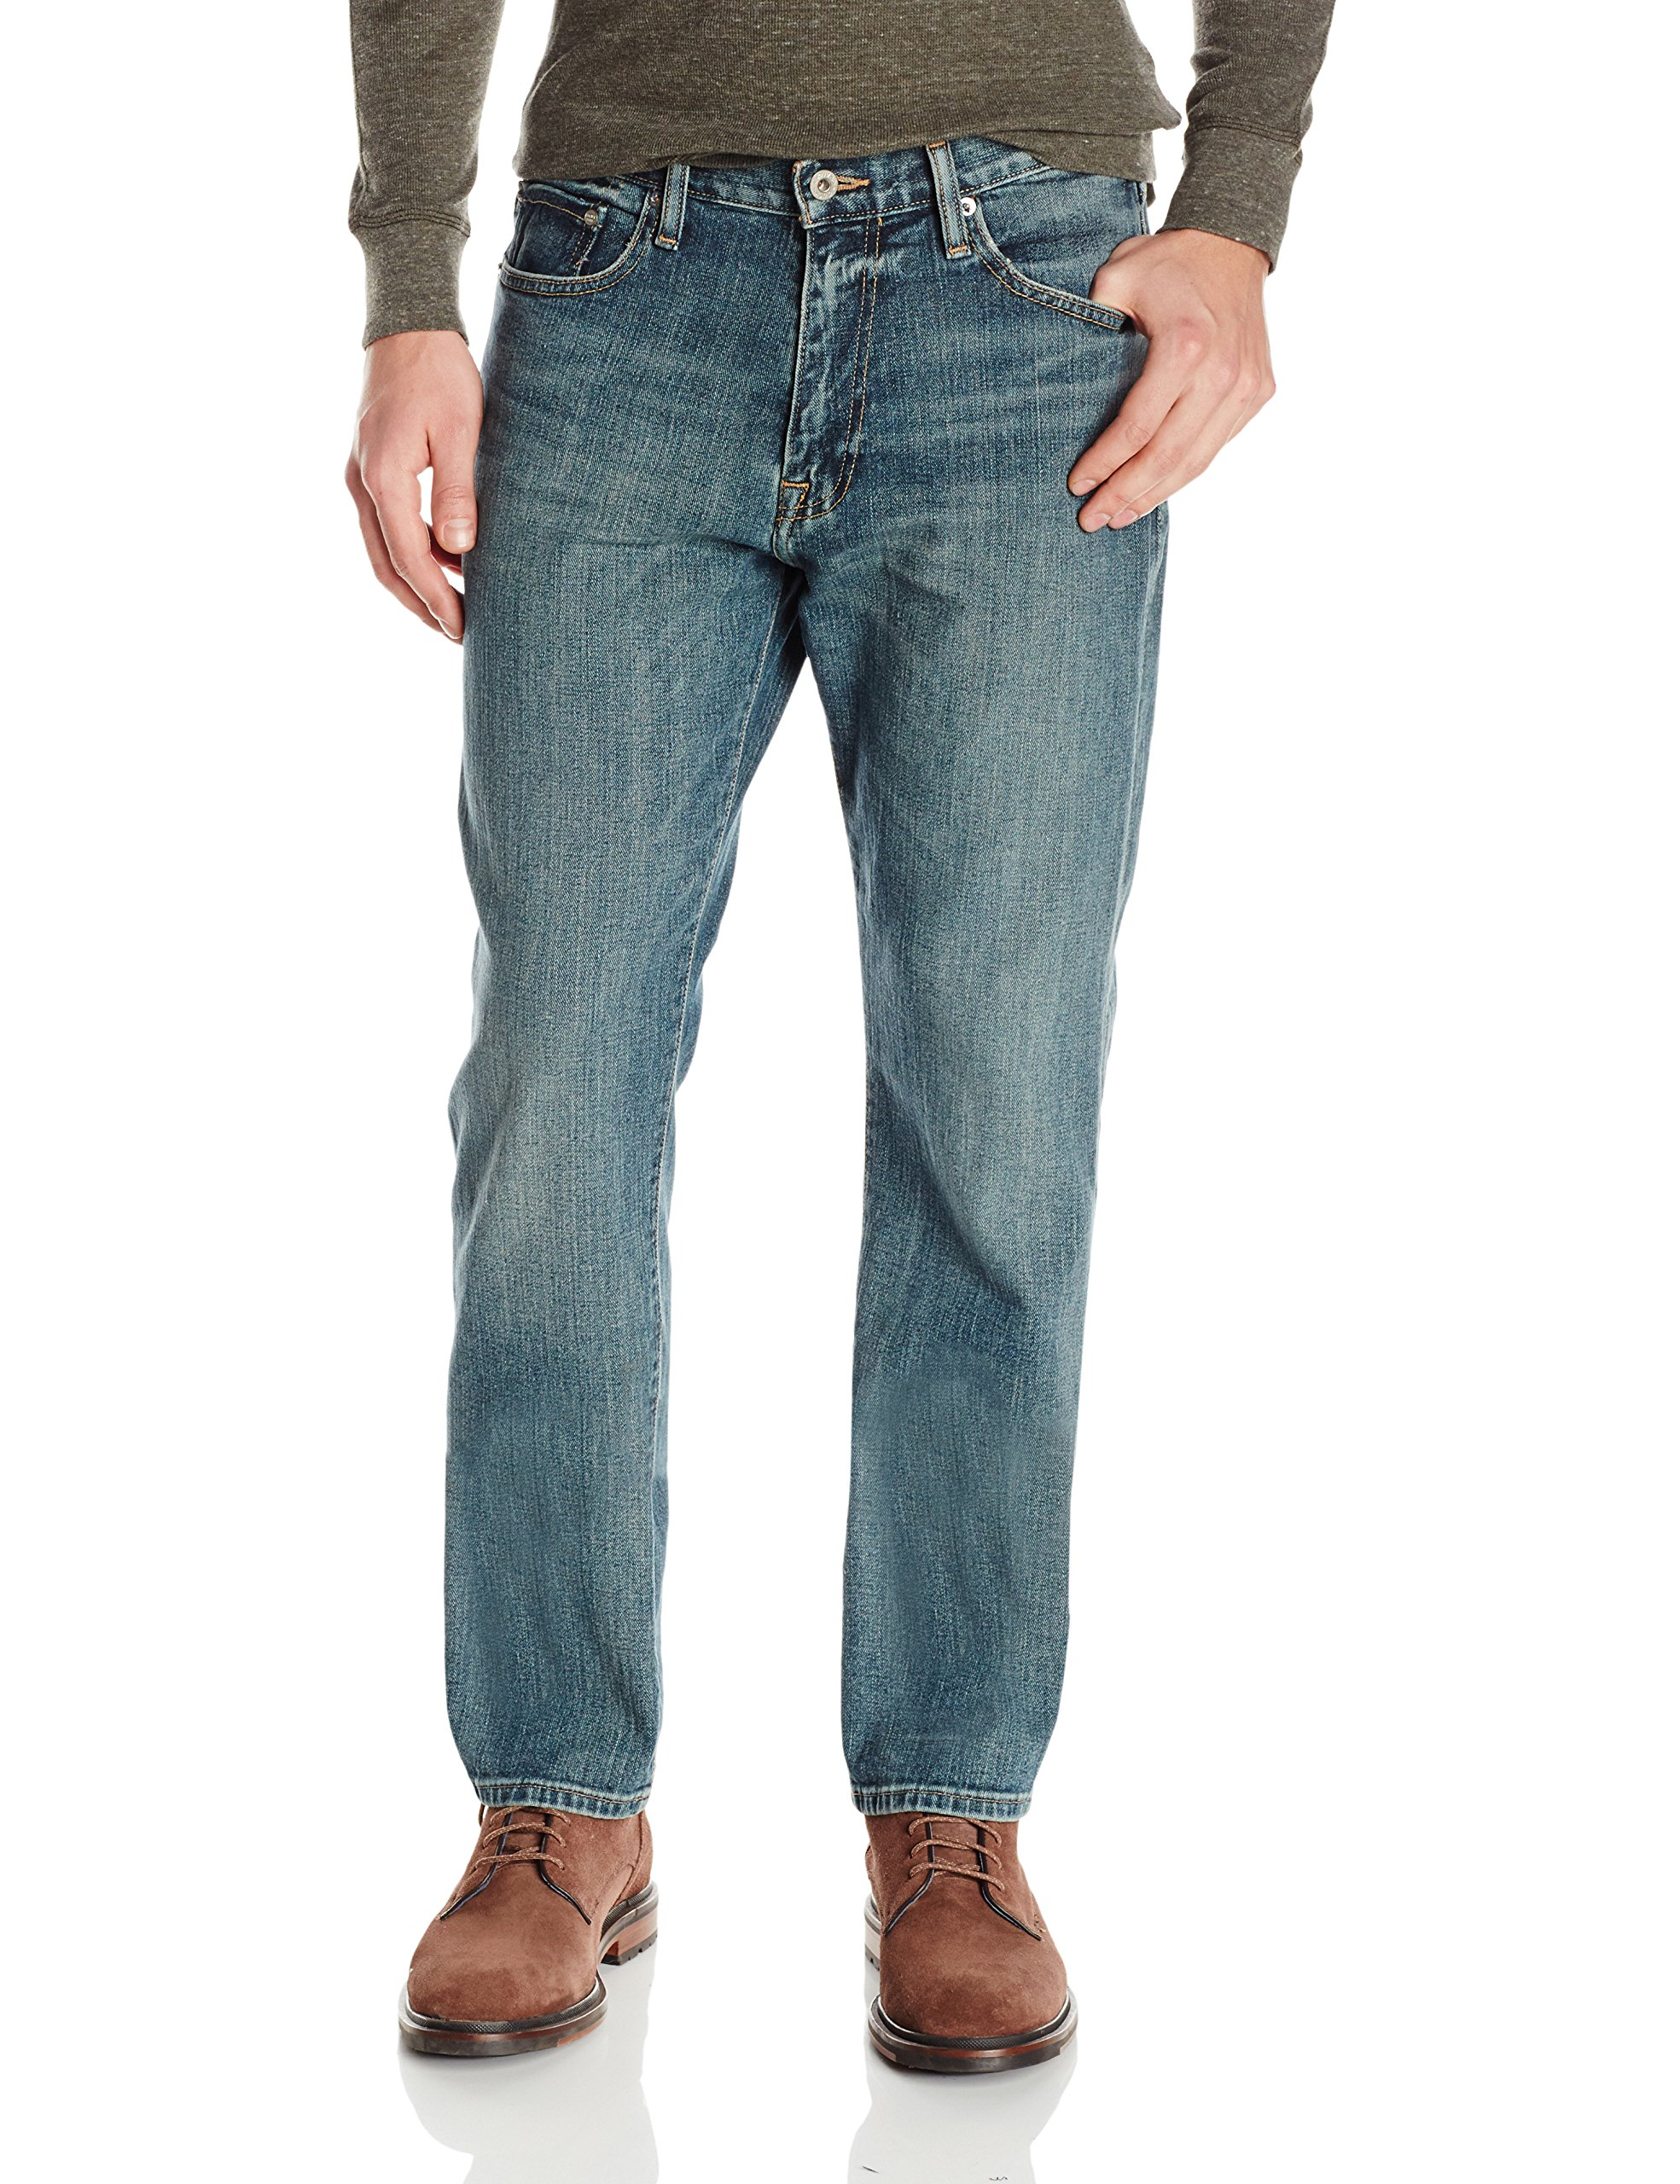 Lucky Brand Men's 410 Athletic Fit Jean in, Milipitas, 36x30